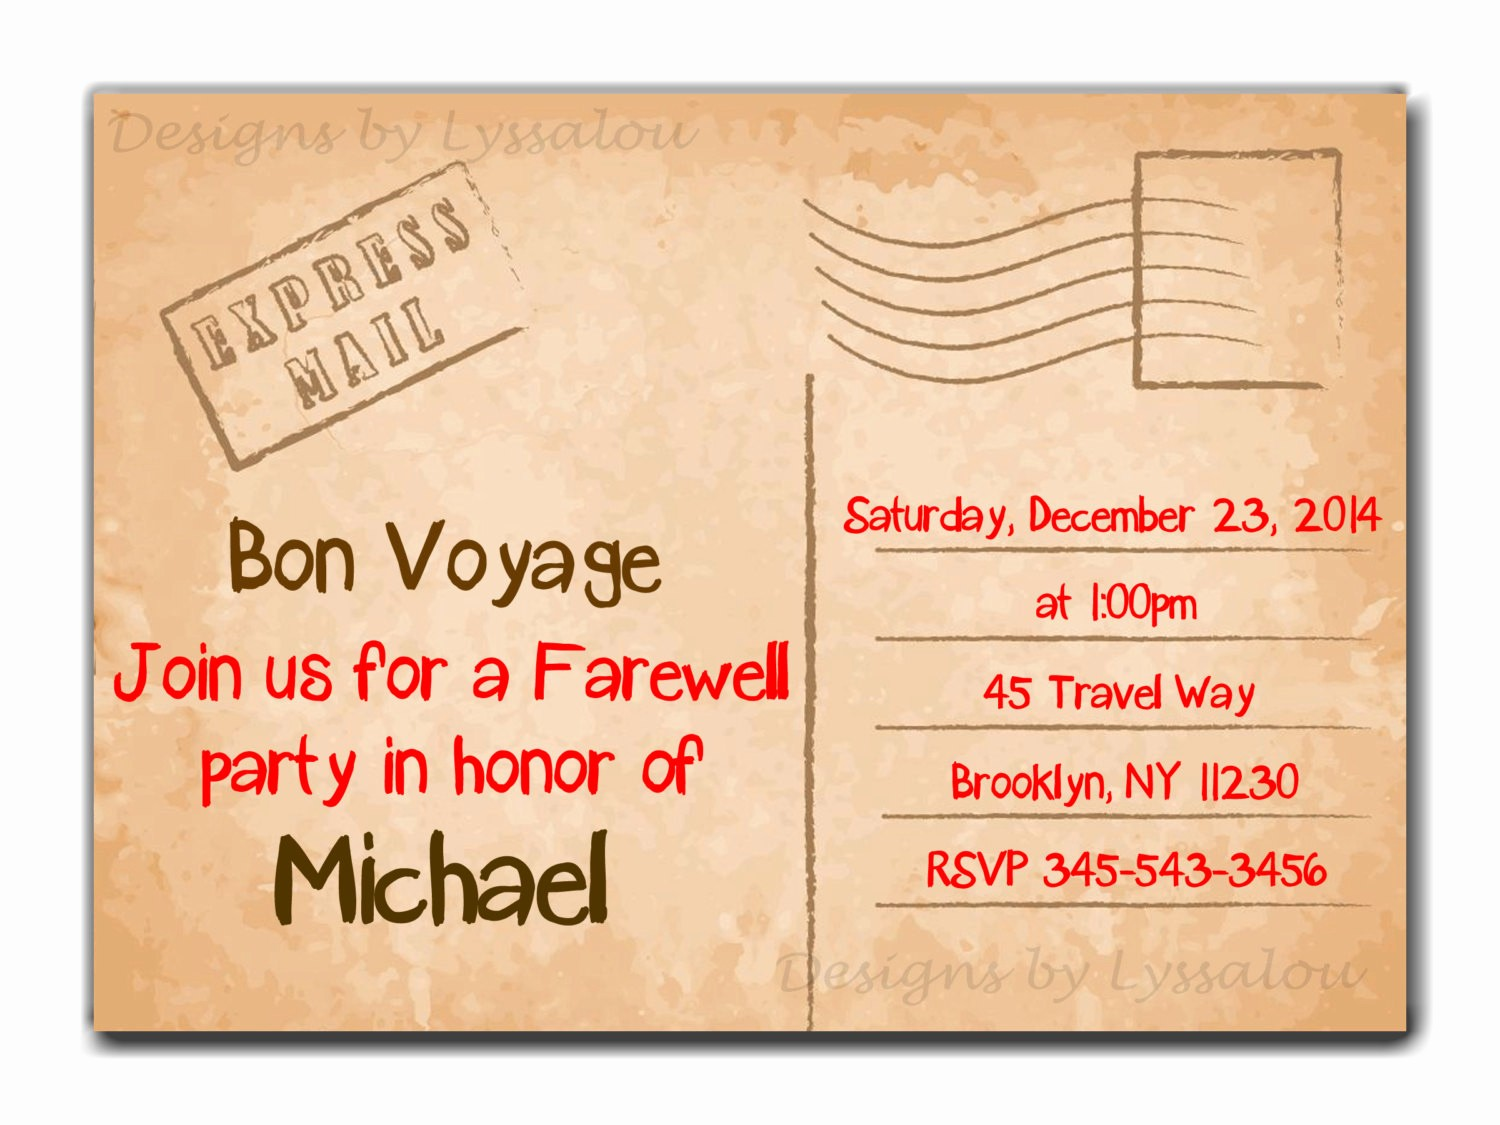 Going Away Flyer Template Free Awesome Travel Farewell Party Invitation Bon Voyage Going Away